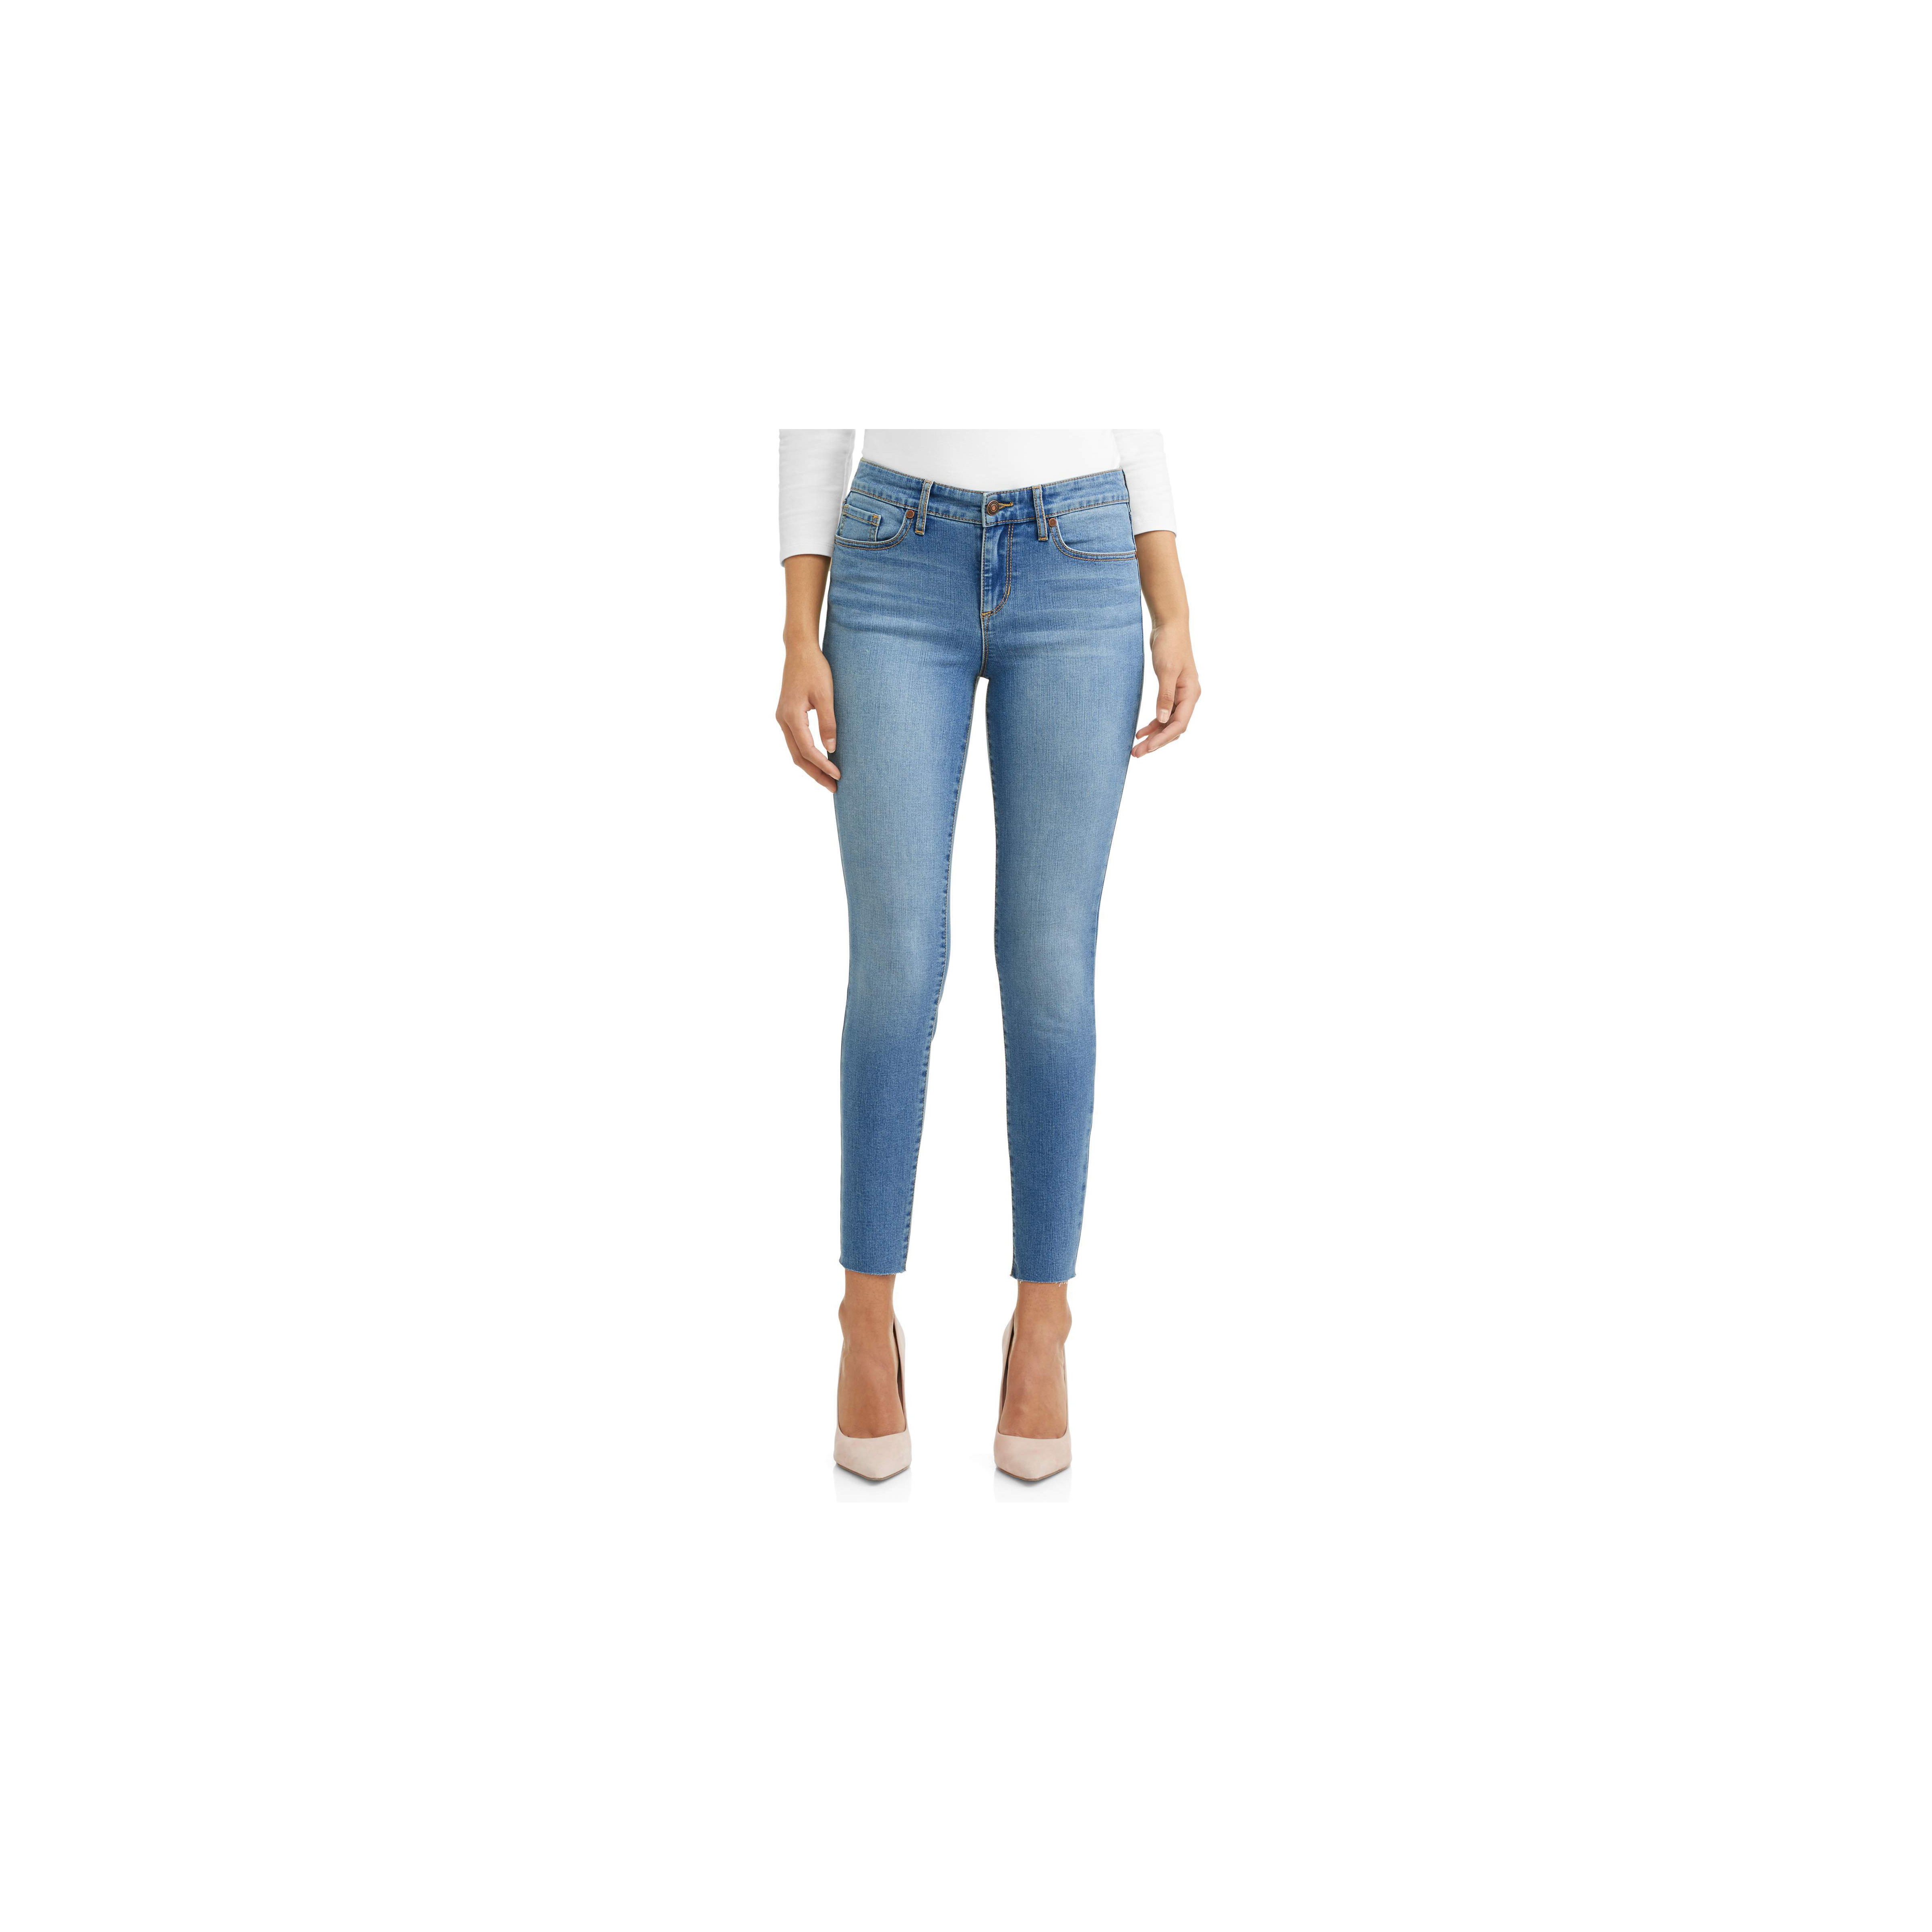 Sofía Jeans Skinny Mid Rise Soft Stretch Ankle Jean